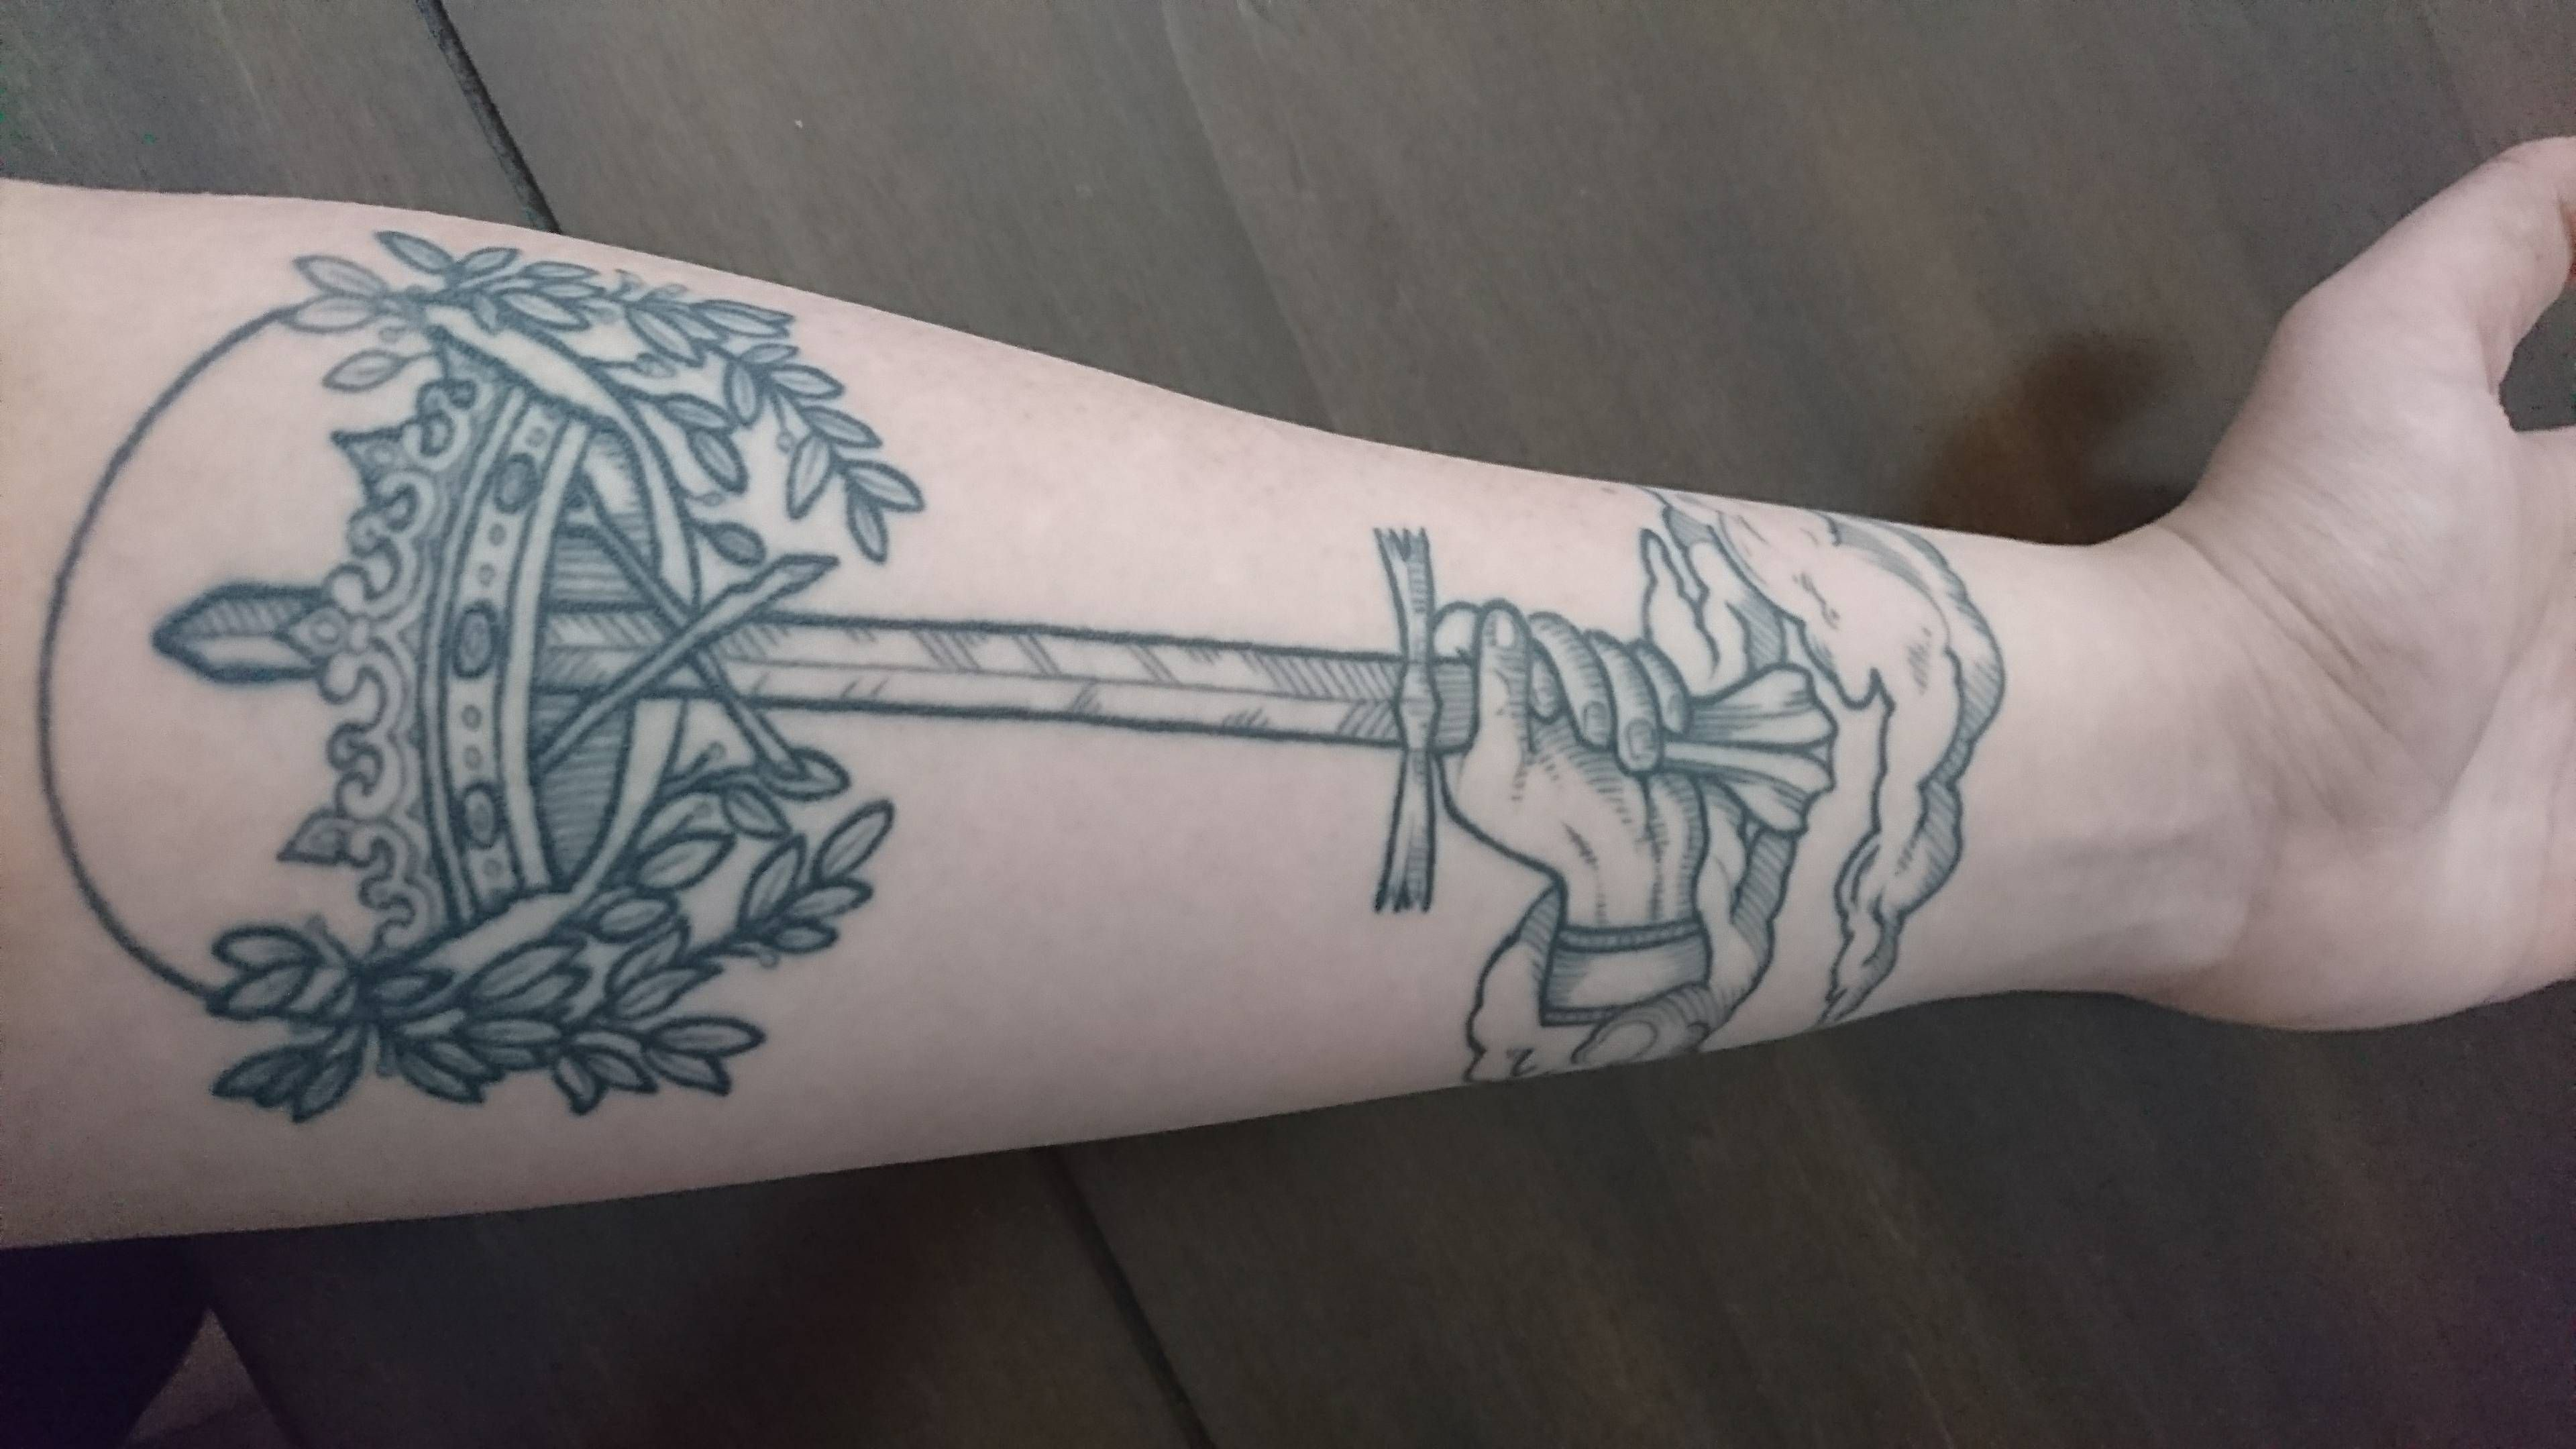 Ace Of Swords From Sara Fabel Formerly At Outer Limits Costa Mesa Ca Exactly One Year Later Sword Tattoo Ace Of Swords Body Art